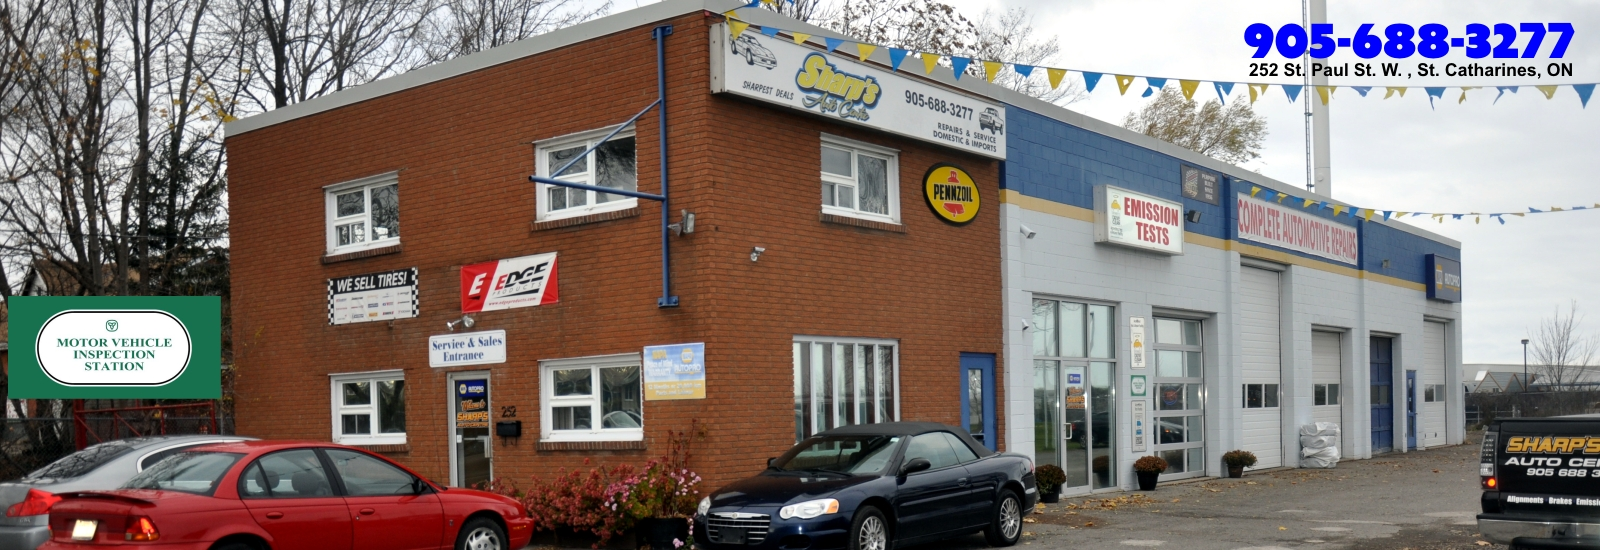 sharps auto centre facility